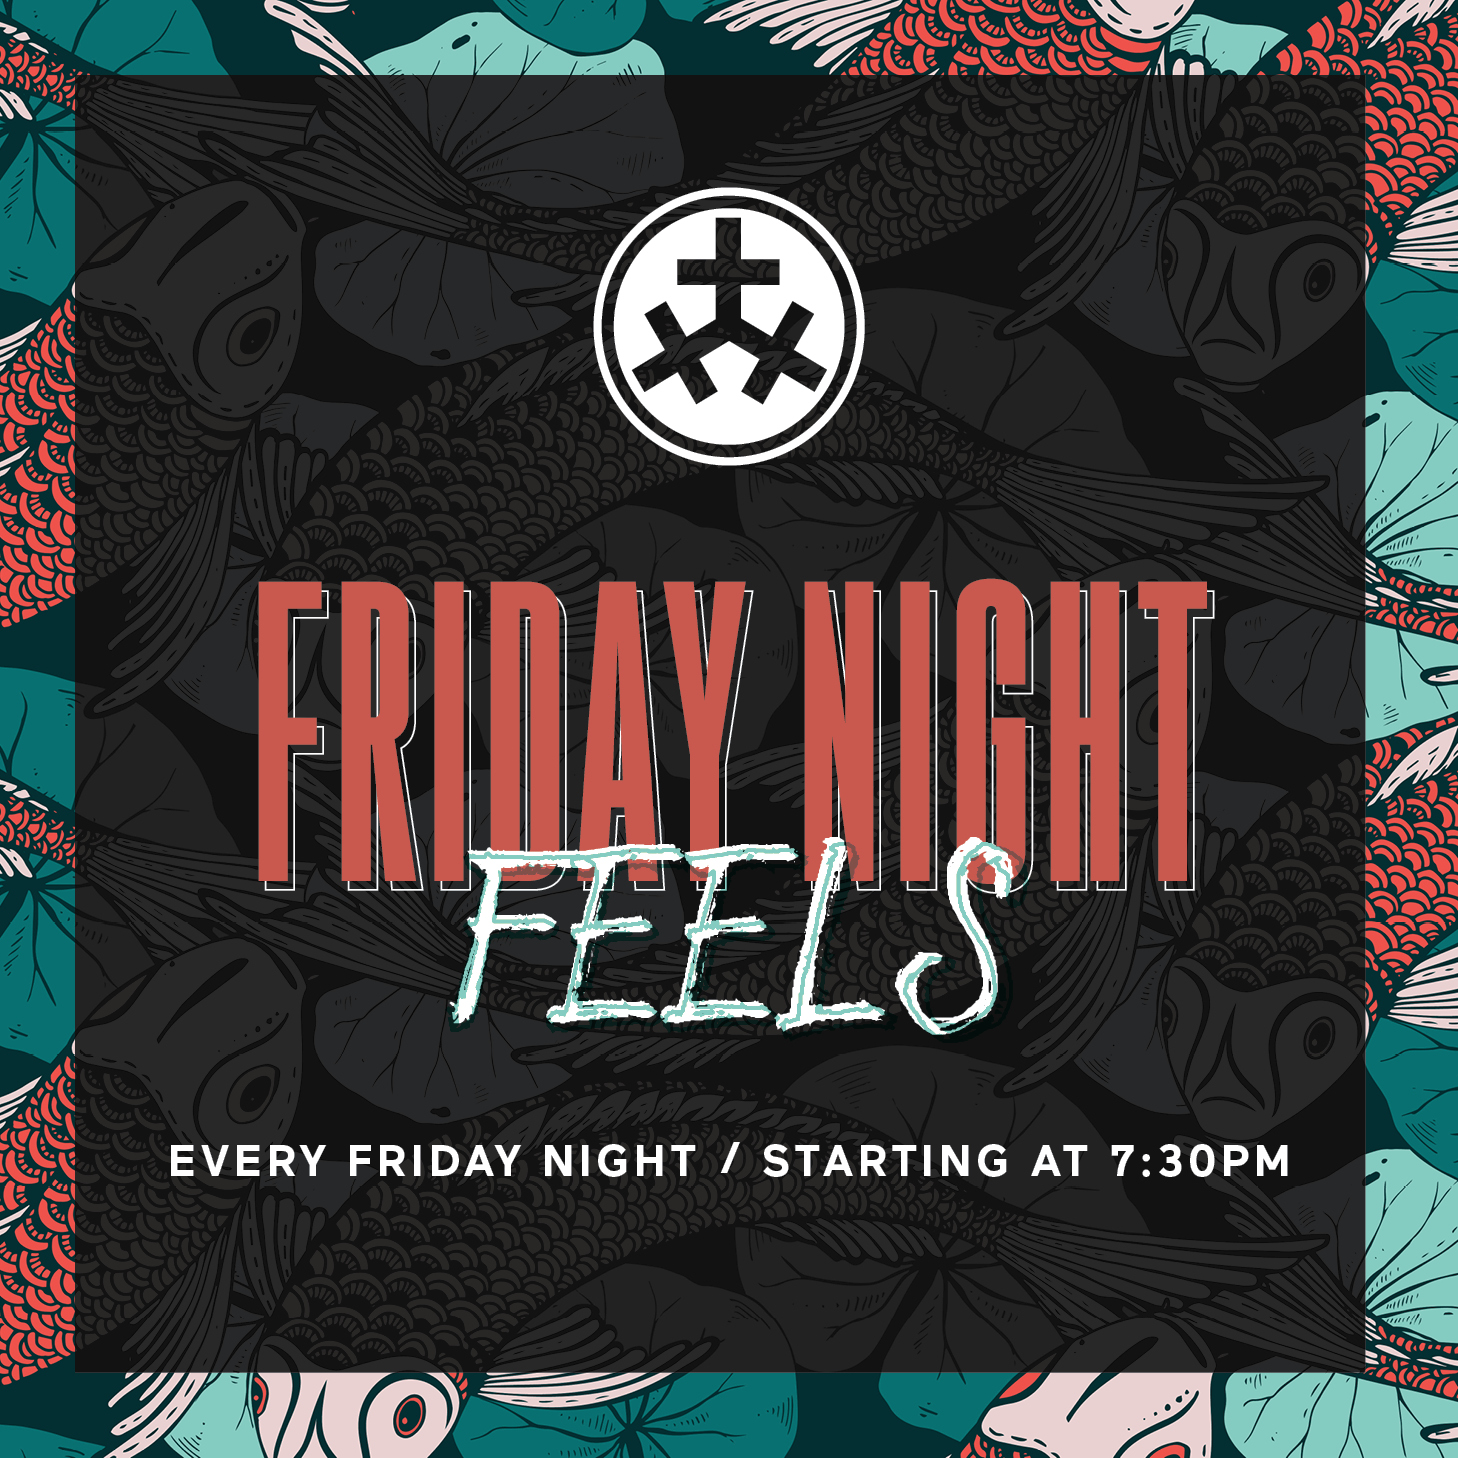 Friday Night Feels - Every Friday night we'll be serving up live music by local musicians. Also, enjoy some late night eats and drink specials!